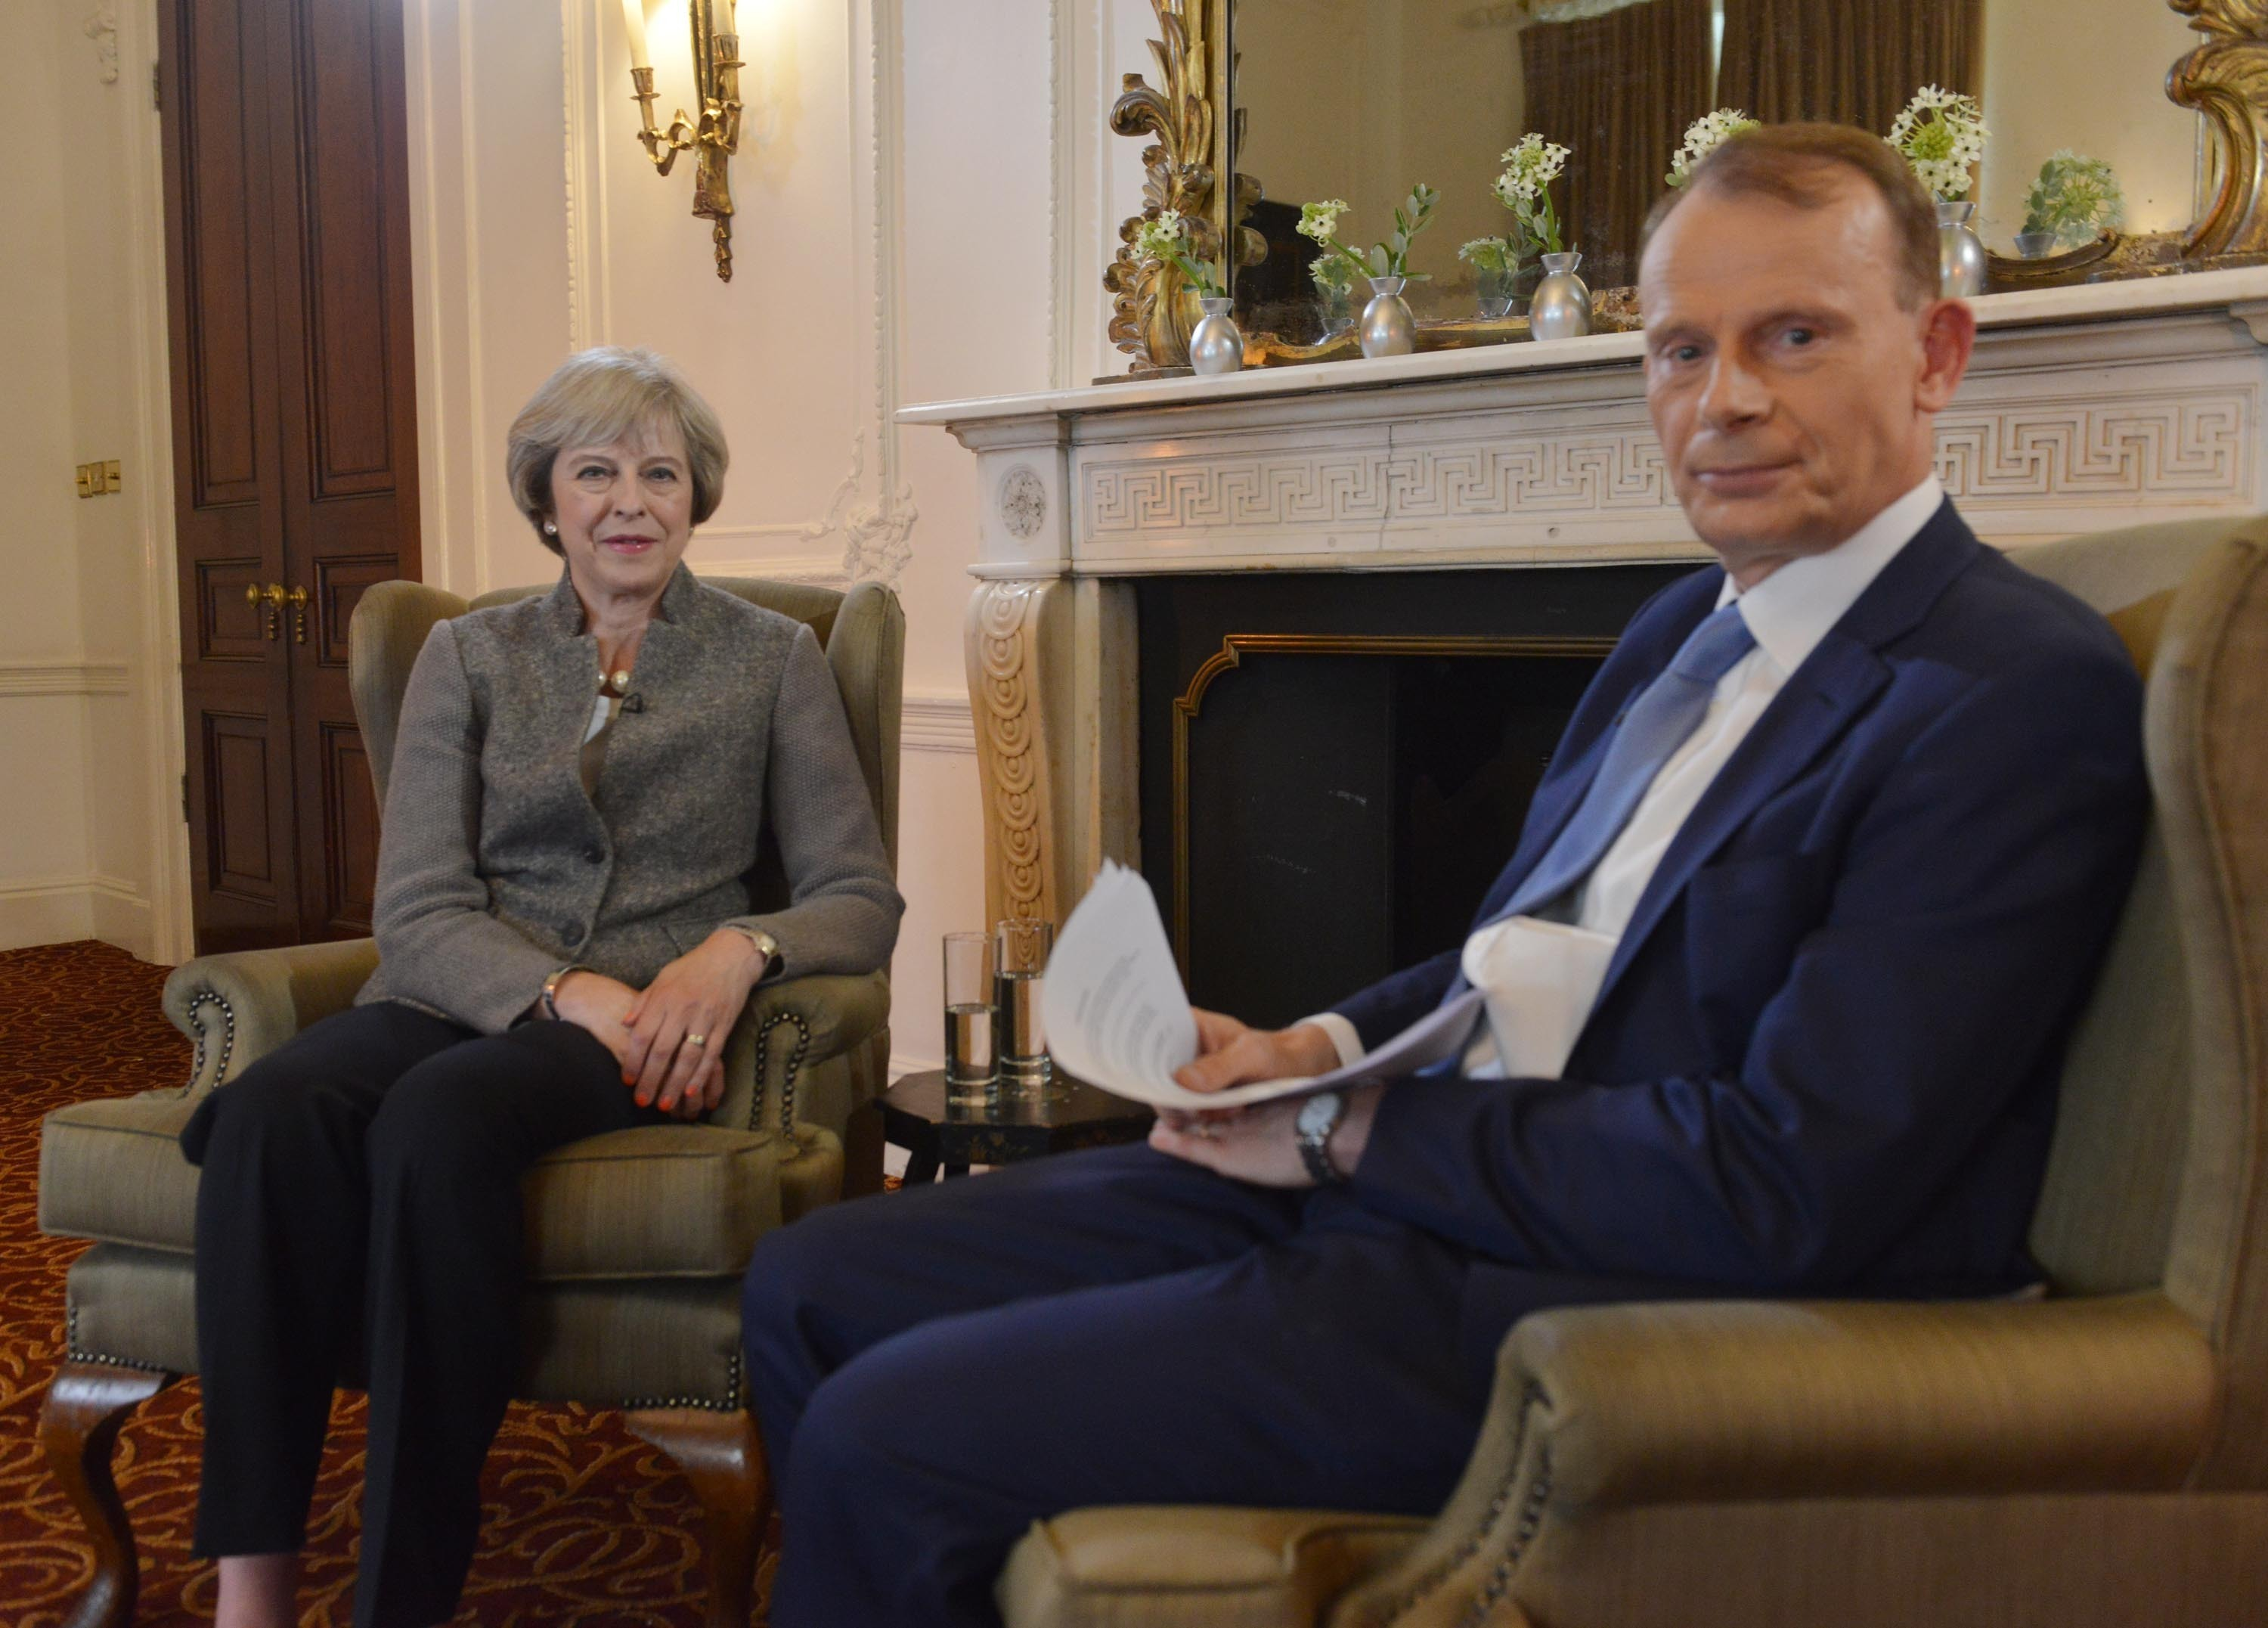 Prime Minister Theresa May taking part in an interview with Andrew Marr for The Andrew Marr Show.